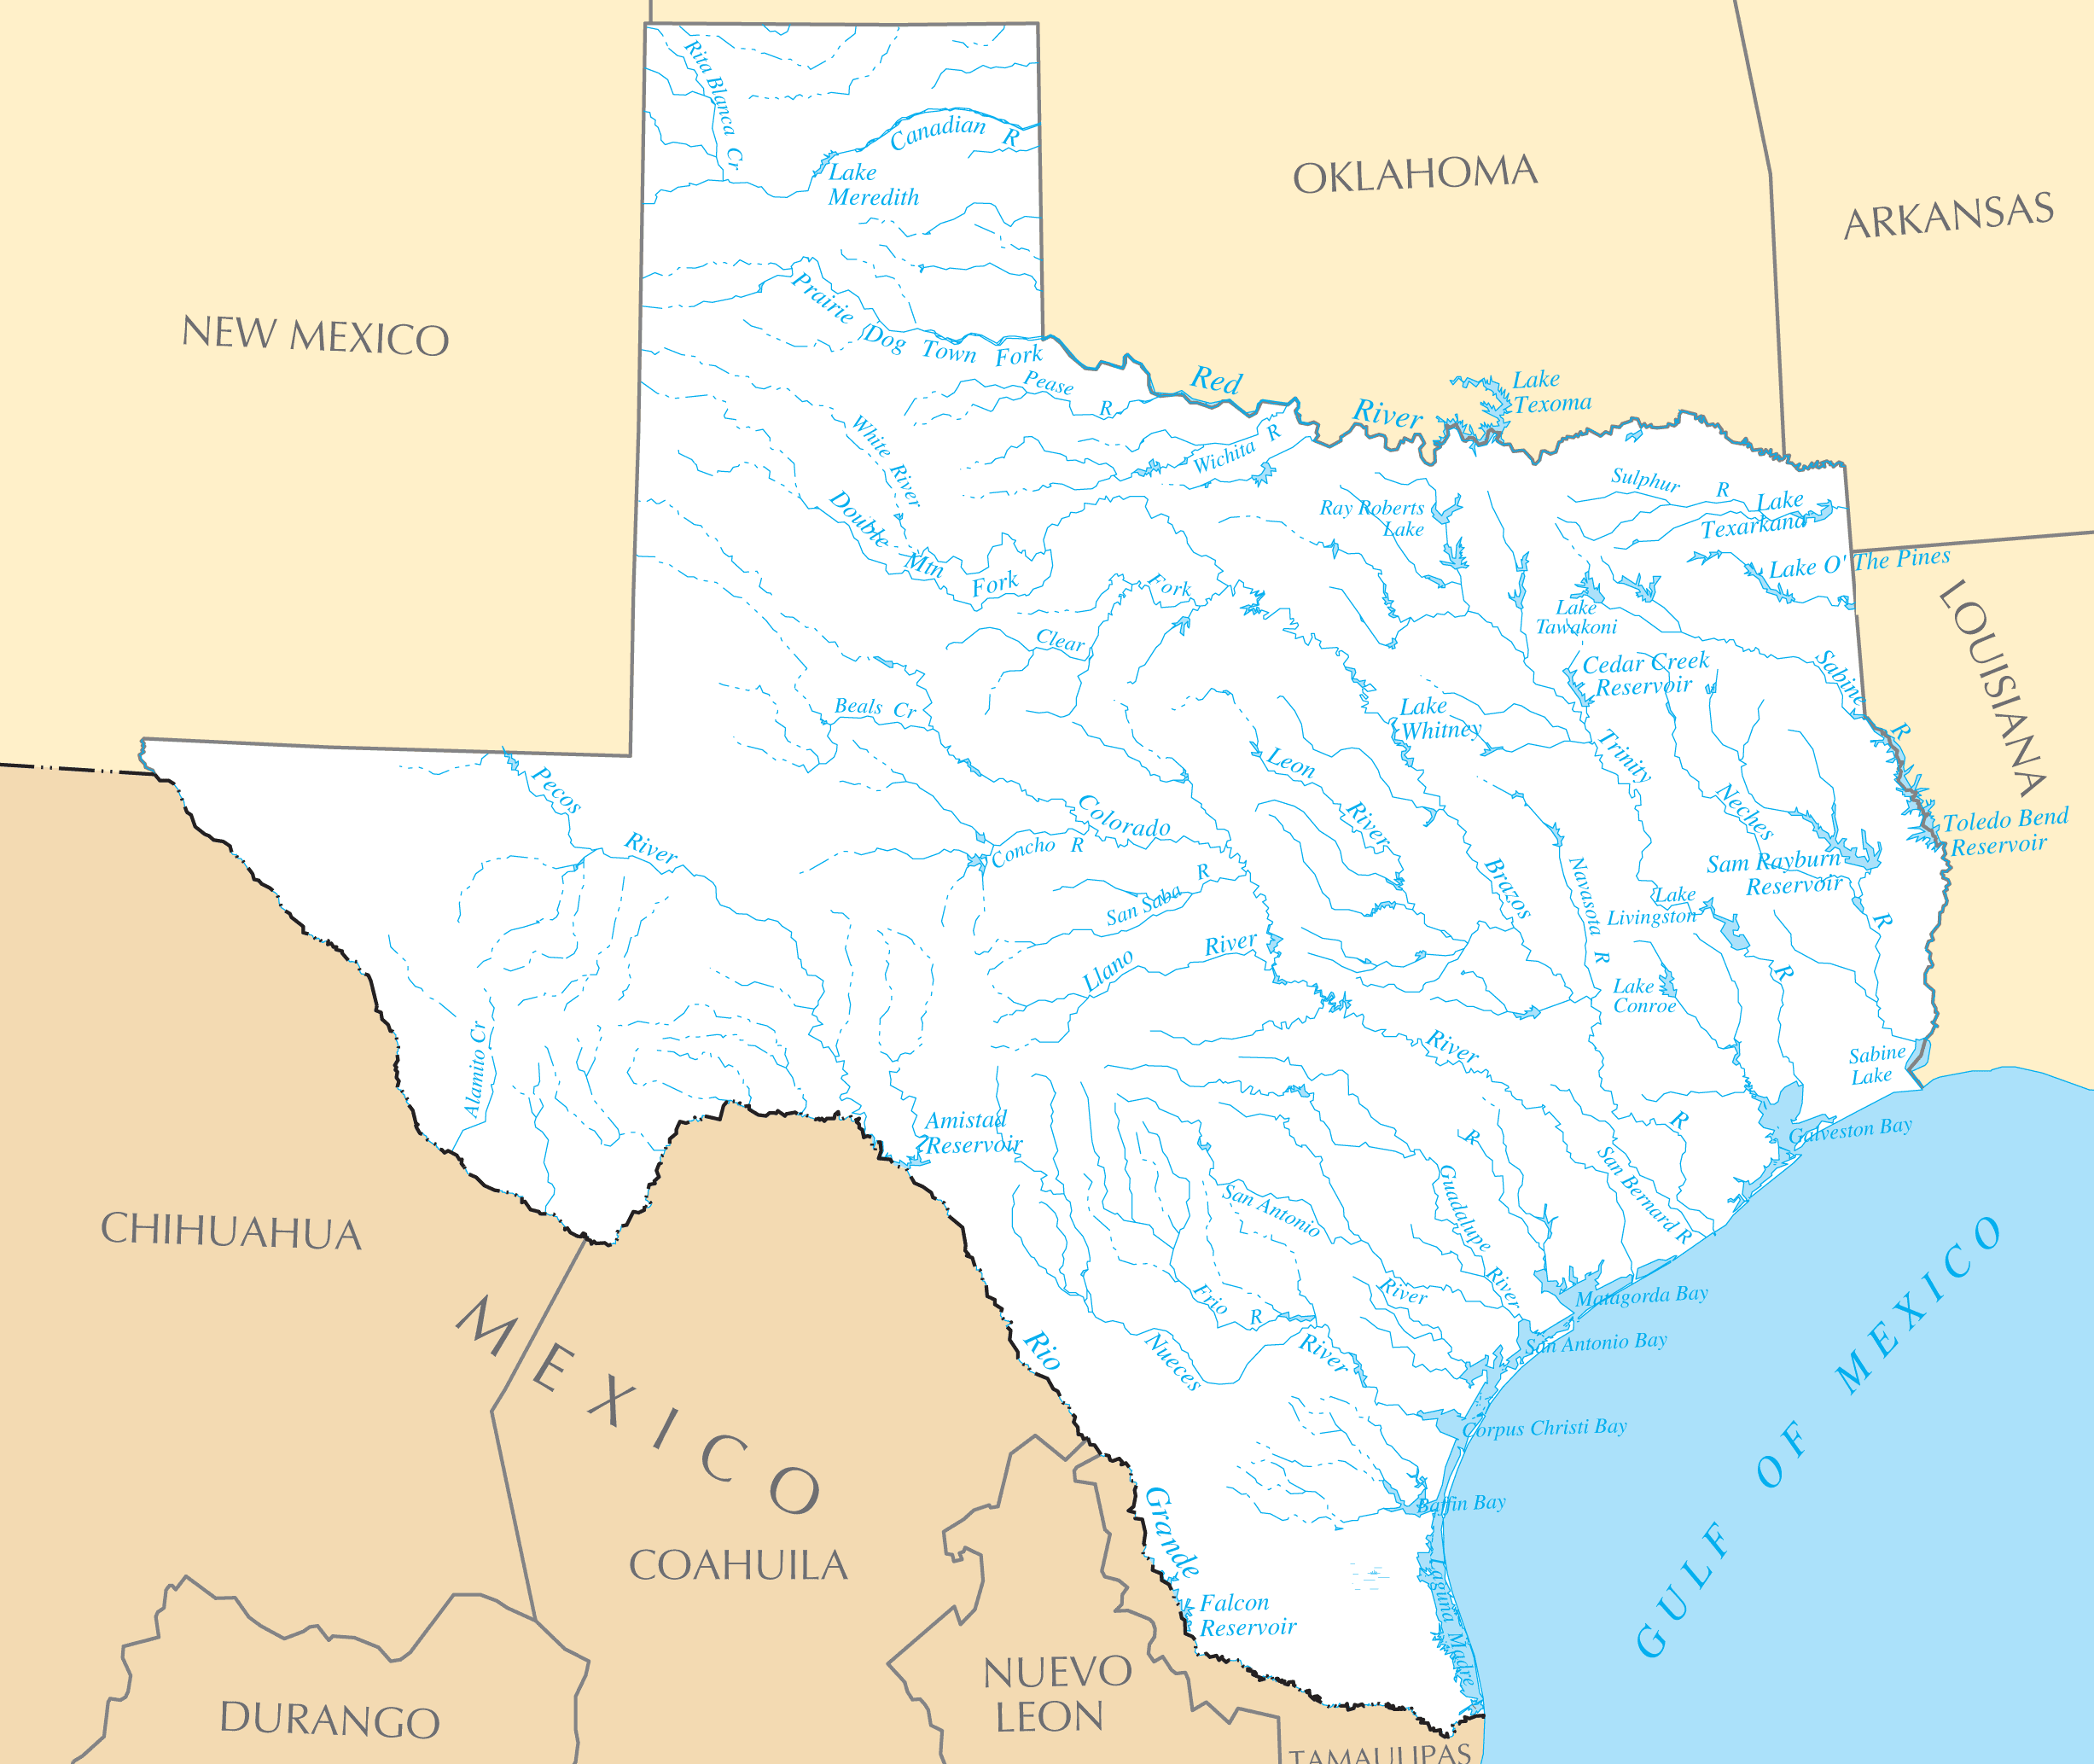 Texas Rivers And Lakes • Mapsof.net